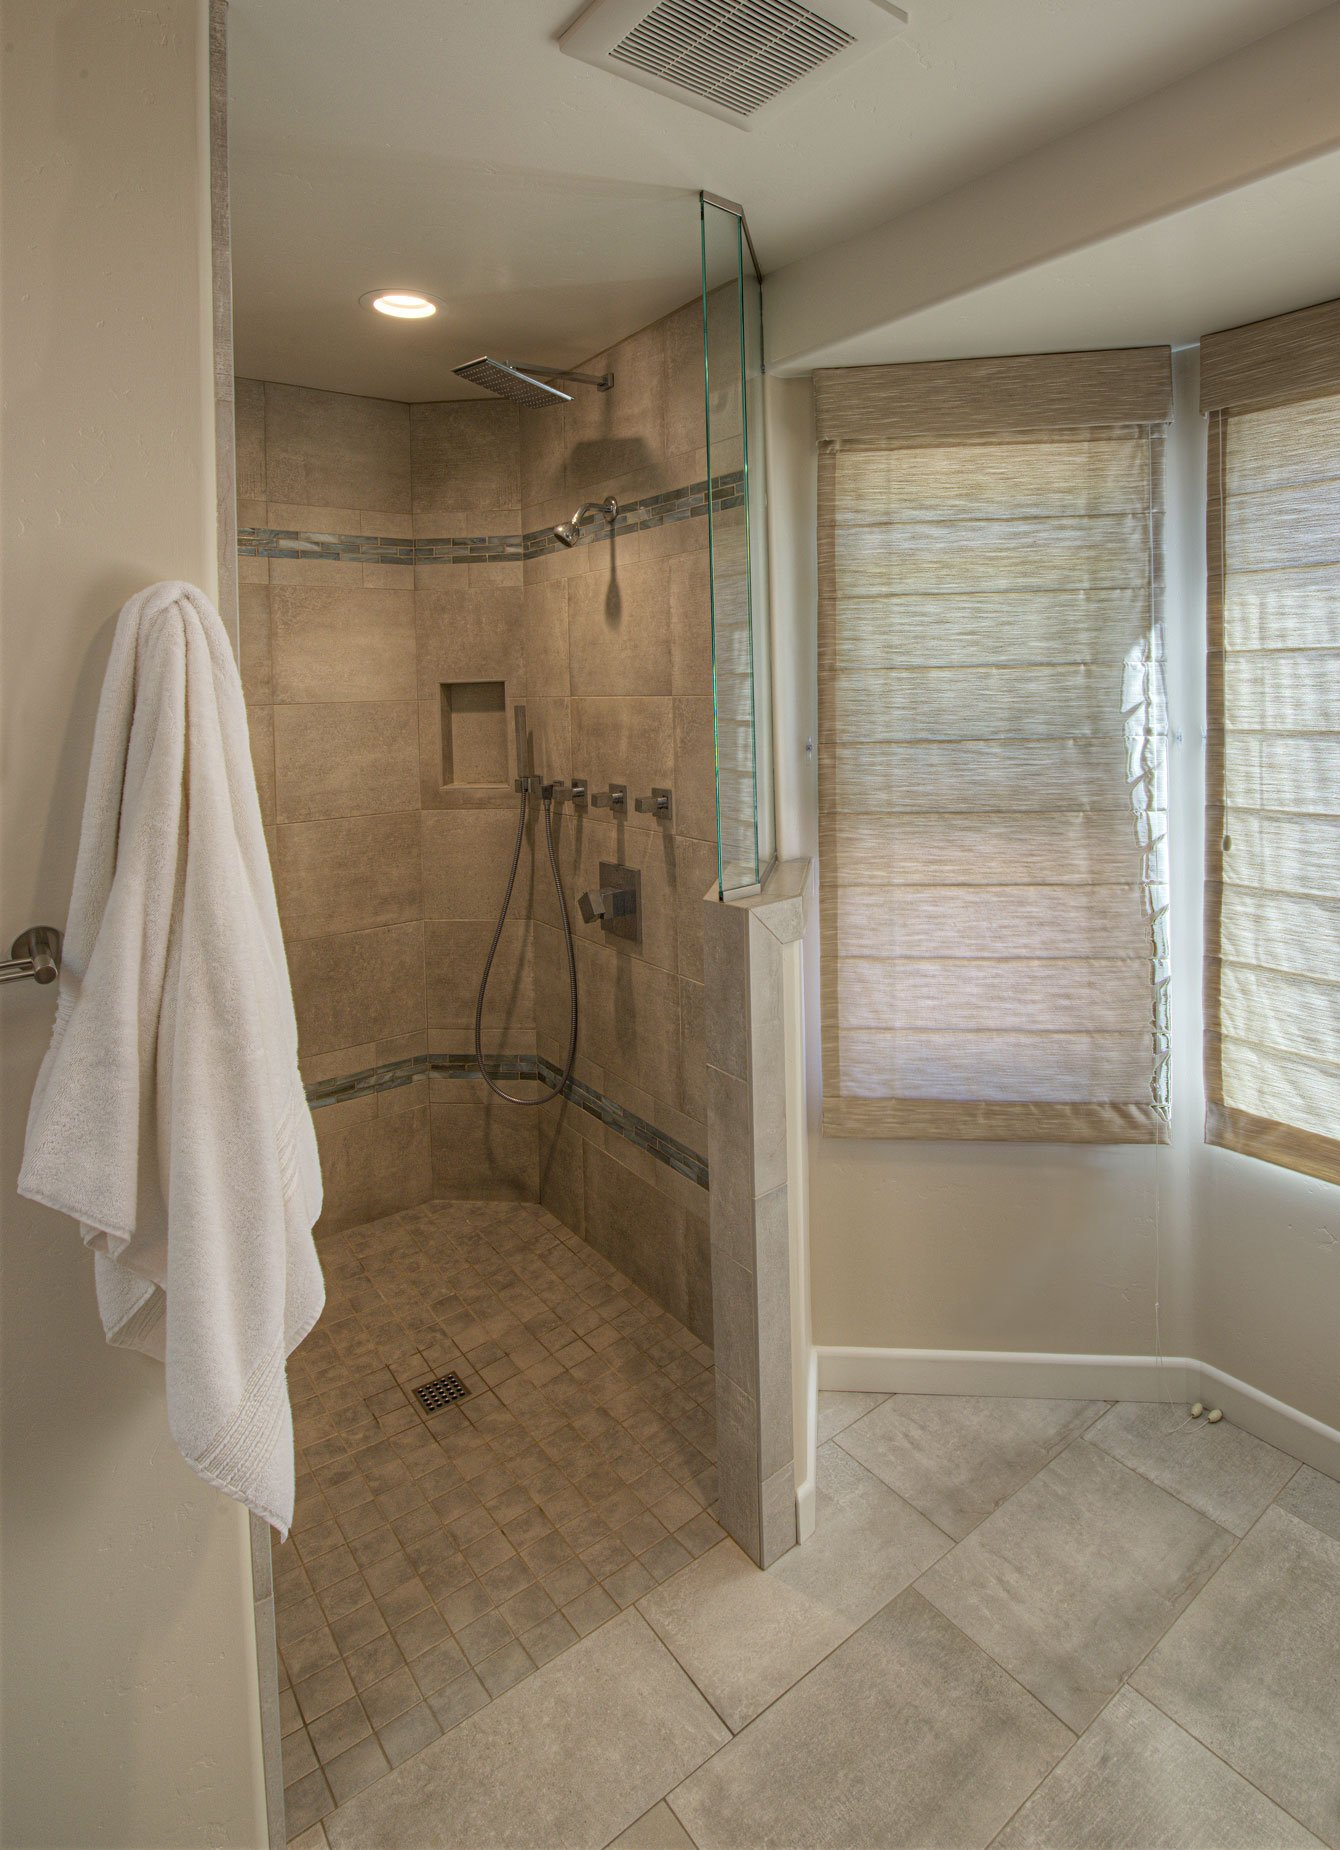 Bathroom remodel contractor near me